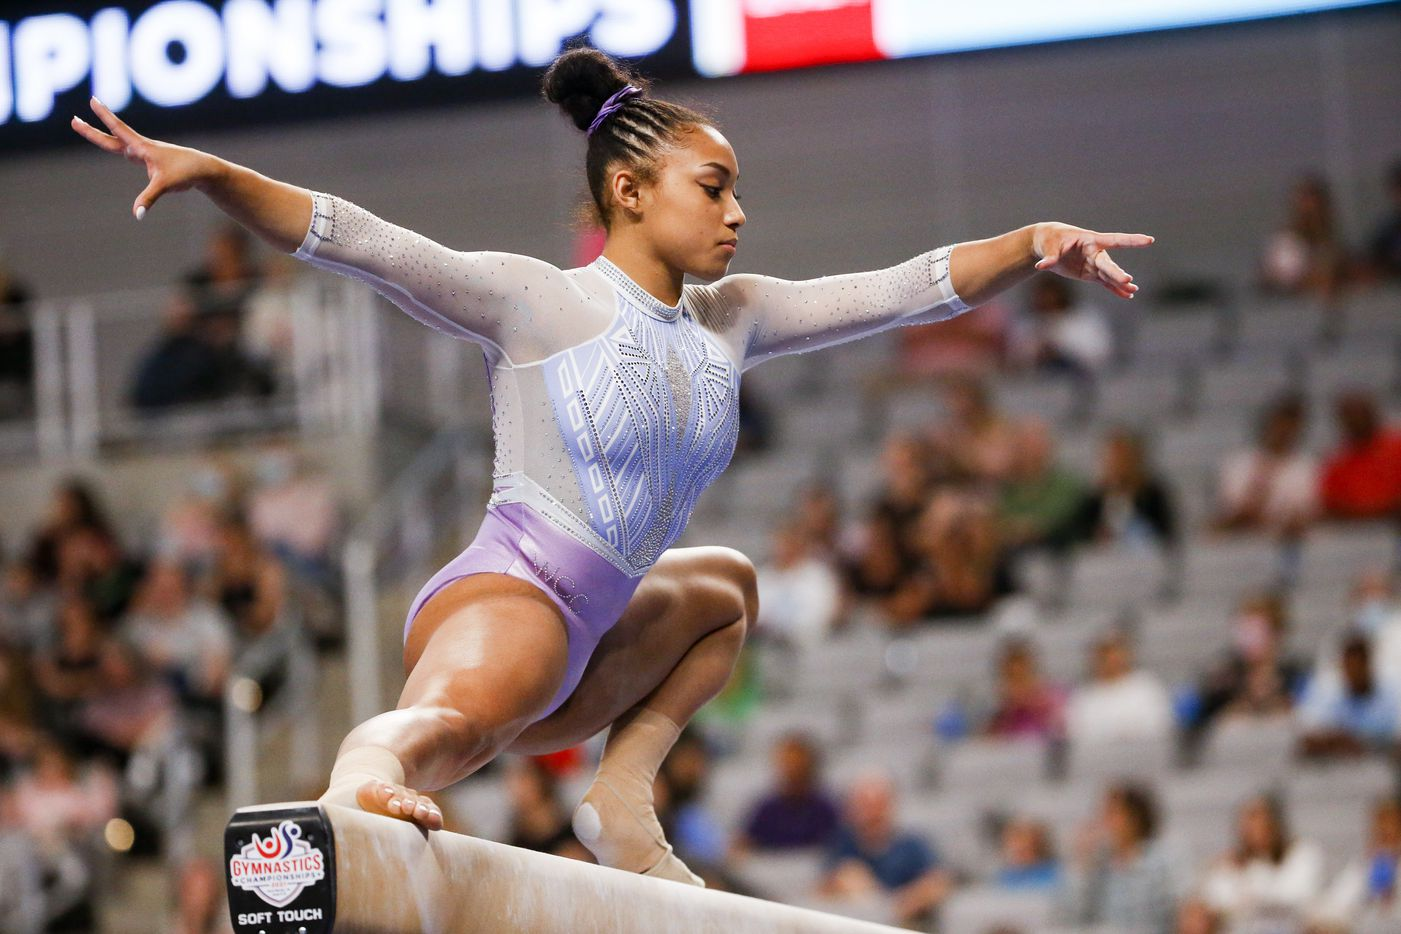 Sydney Barros competes on the balance beam during day 1 of the senior women's US gymnastics championships on Friday, June 4, 2021, at Dickies Arena in Fort Worth. (Juan Figueroa/The Dallas Morning News)